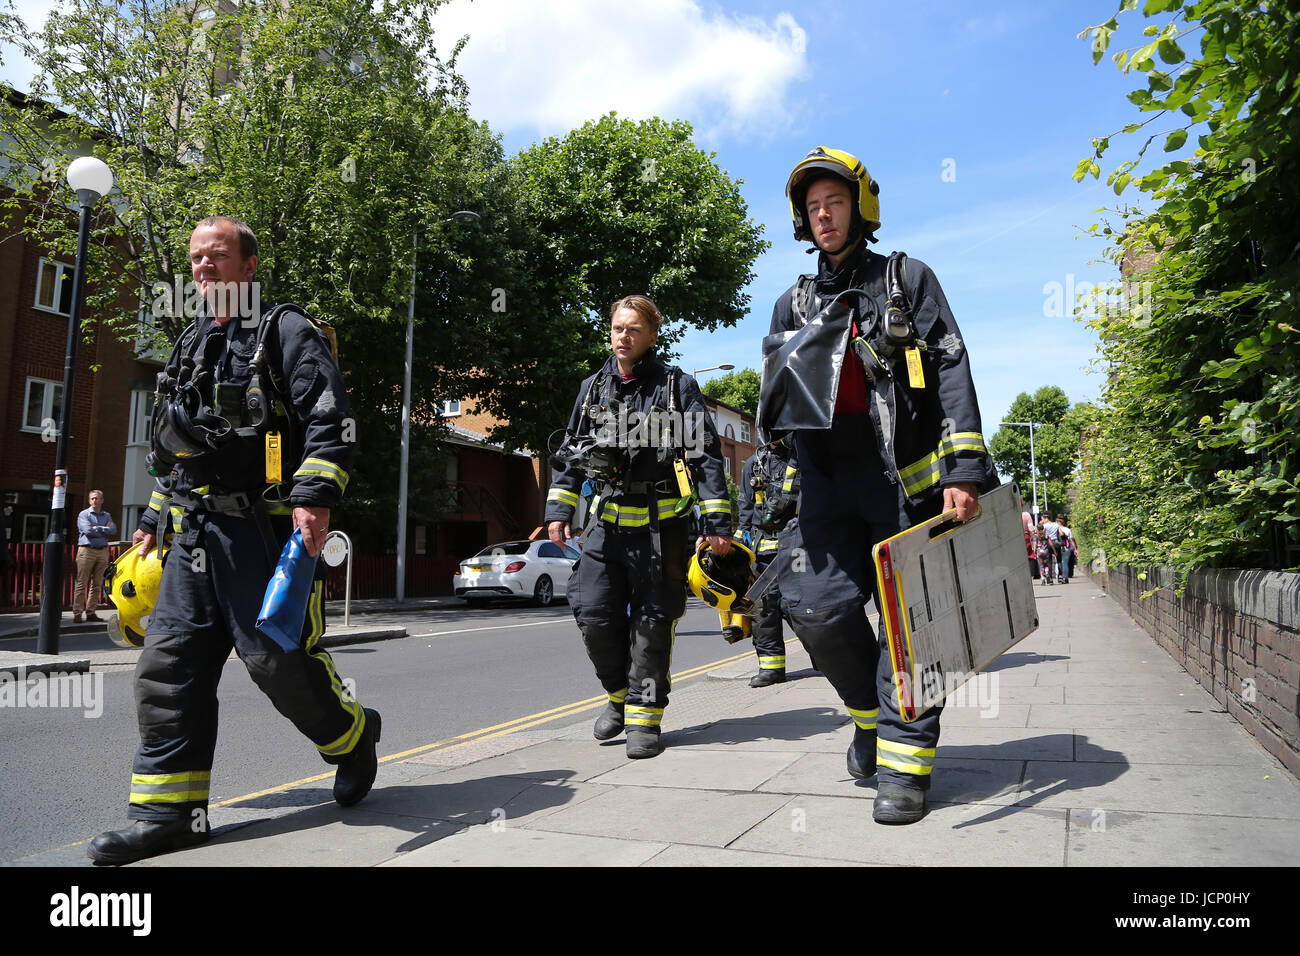 London, UK. 16th June, 2017. Firefighters around the Grenfell Tower block of flats in West London after the building - Stock Image